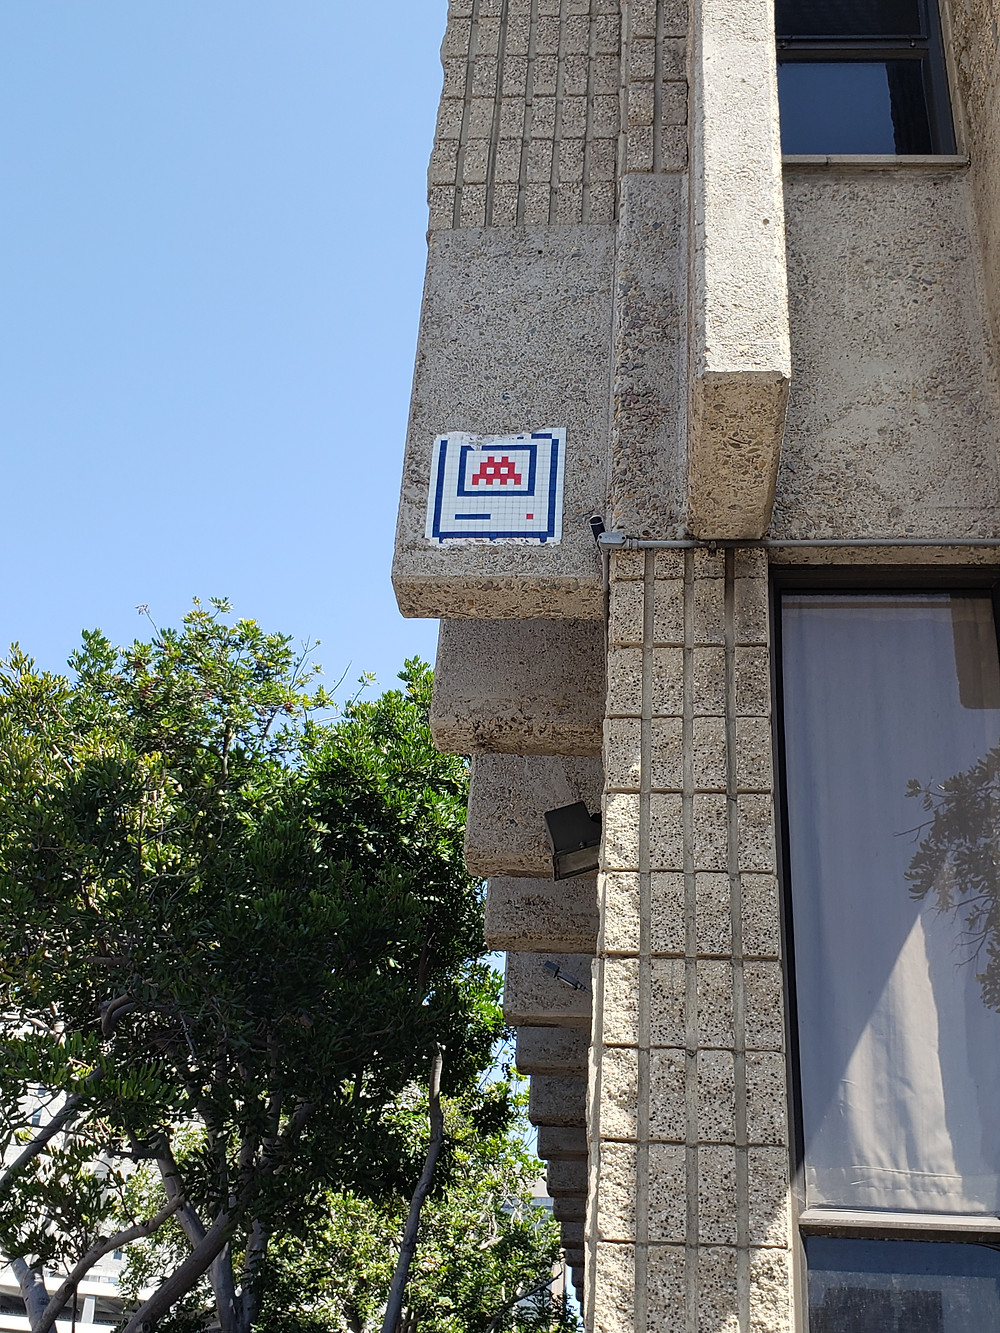 SD_05, one of the only remaining Invader pieces in San Diego.